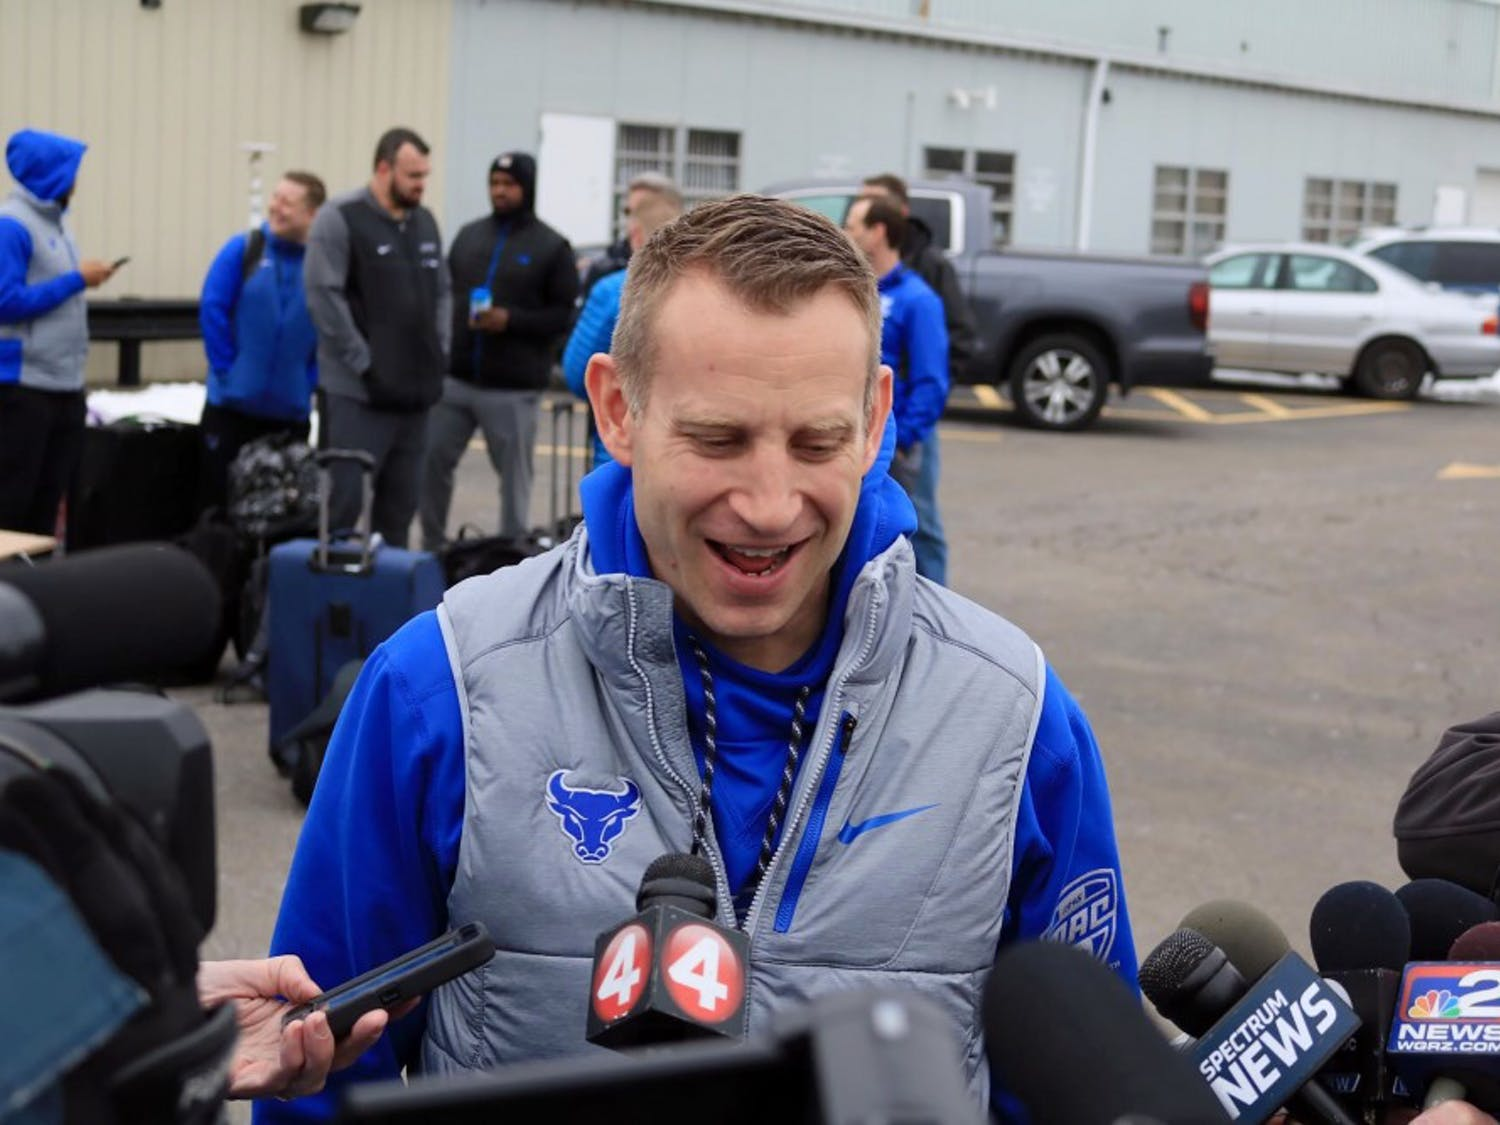 Bulls head coach Nate Oats (side) and junior guard CJ Massinburg (side) talk to the media outside Prior Aviation before the Bulls left for Boise, Idaho. The Bull will take on projected top-five pick Deandre Ayton and the Arizona Wildcats.